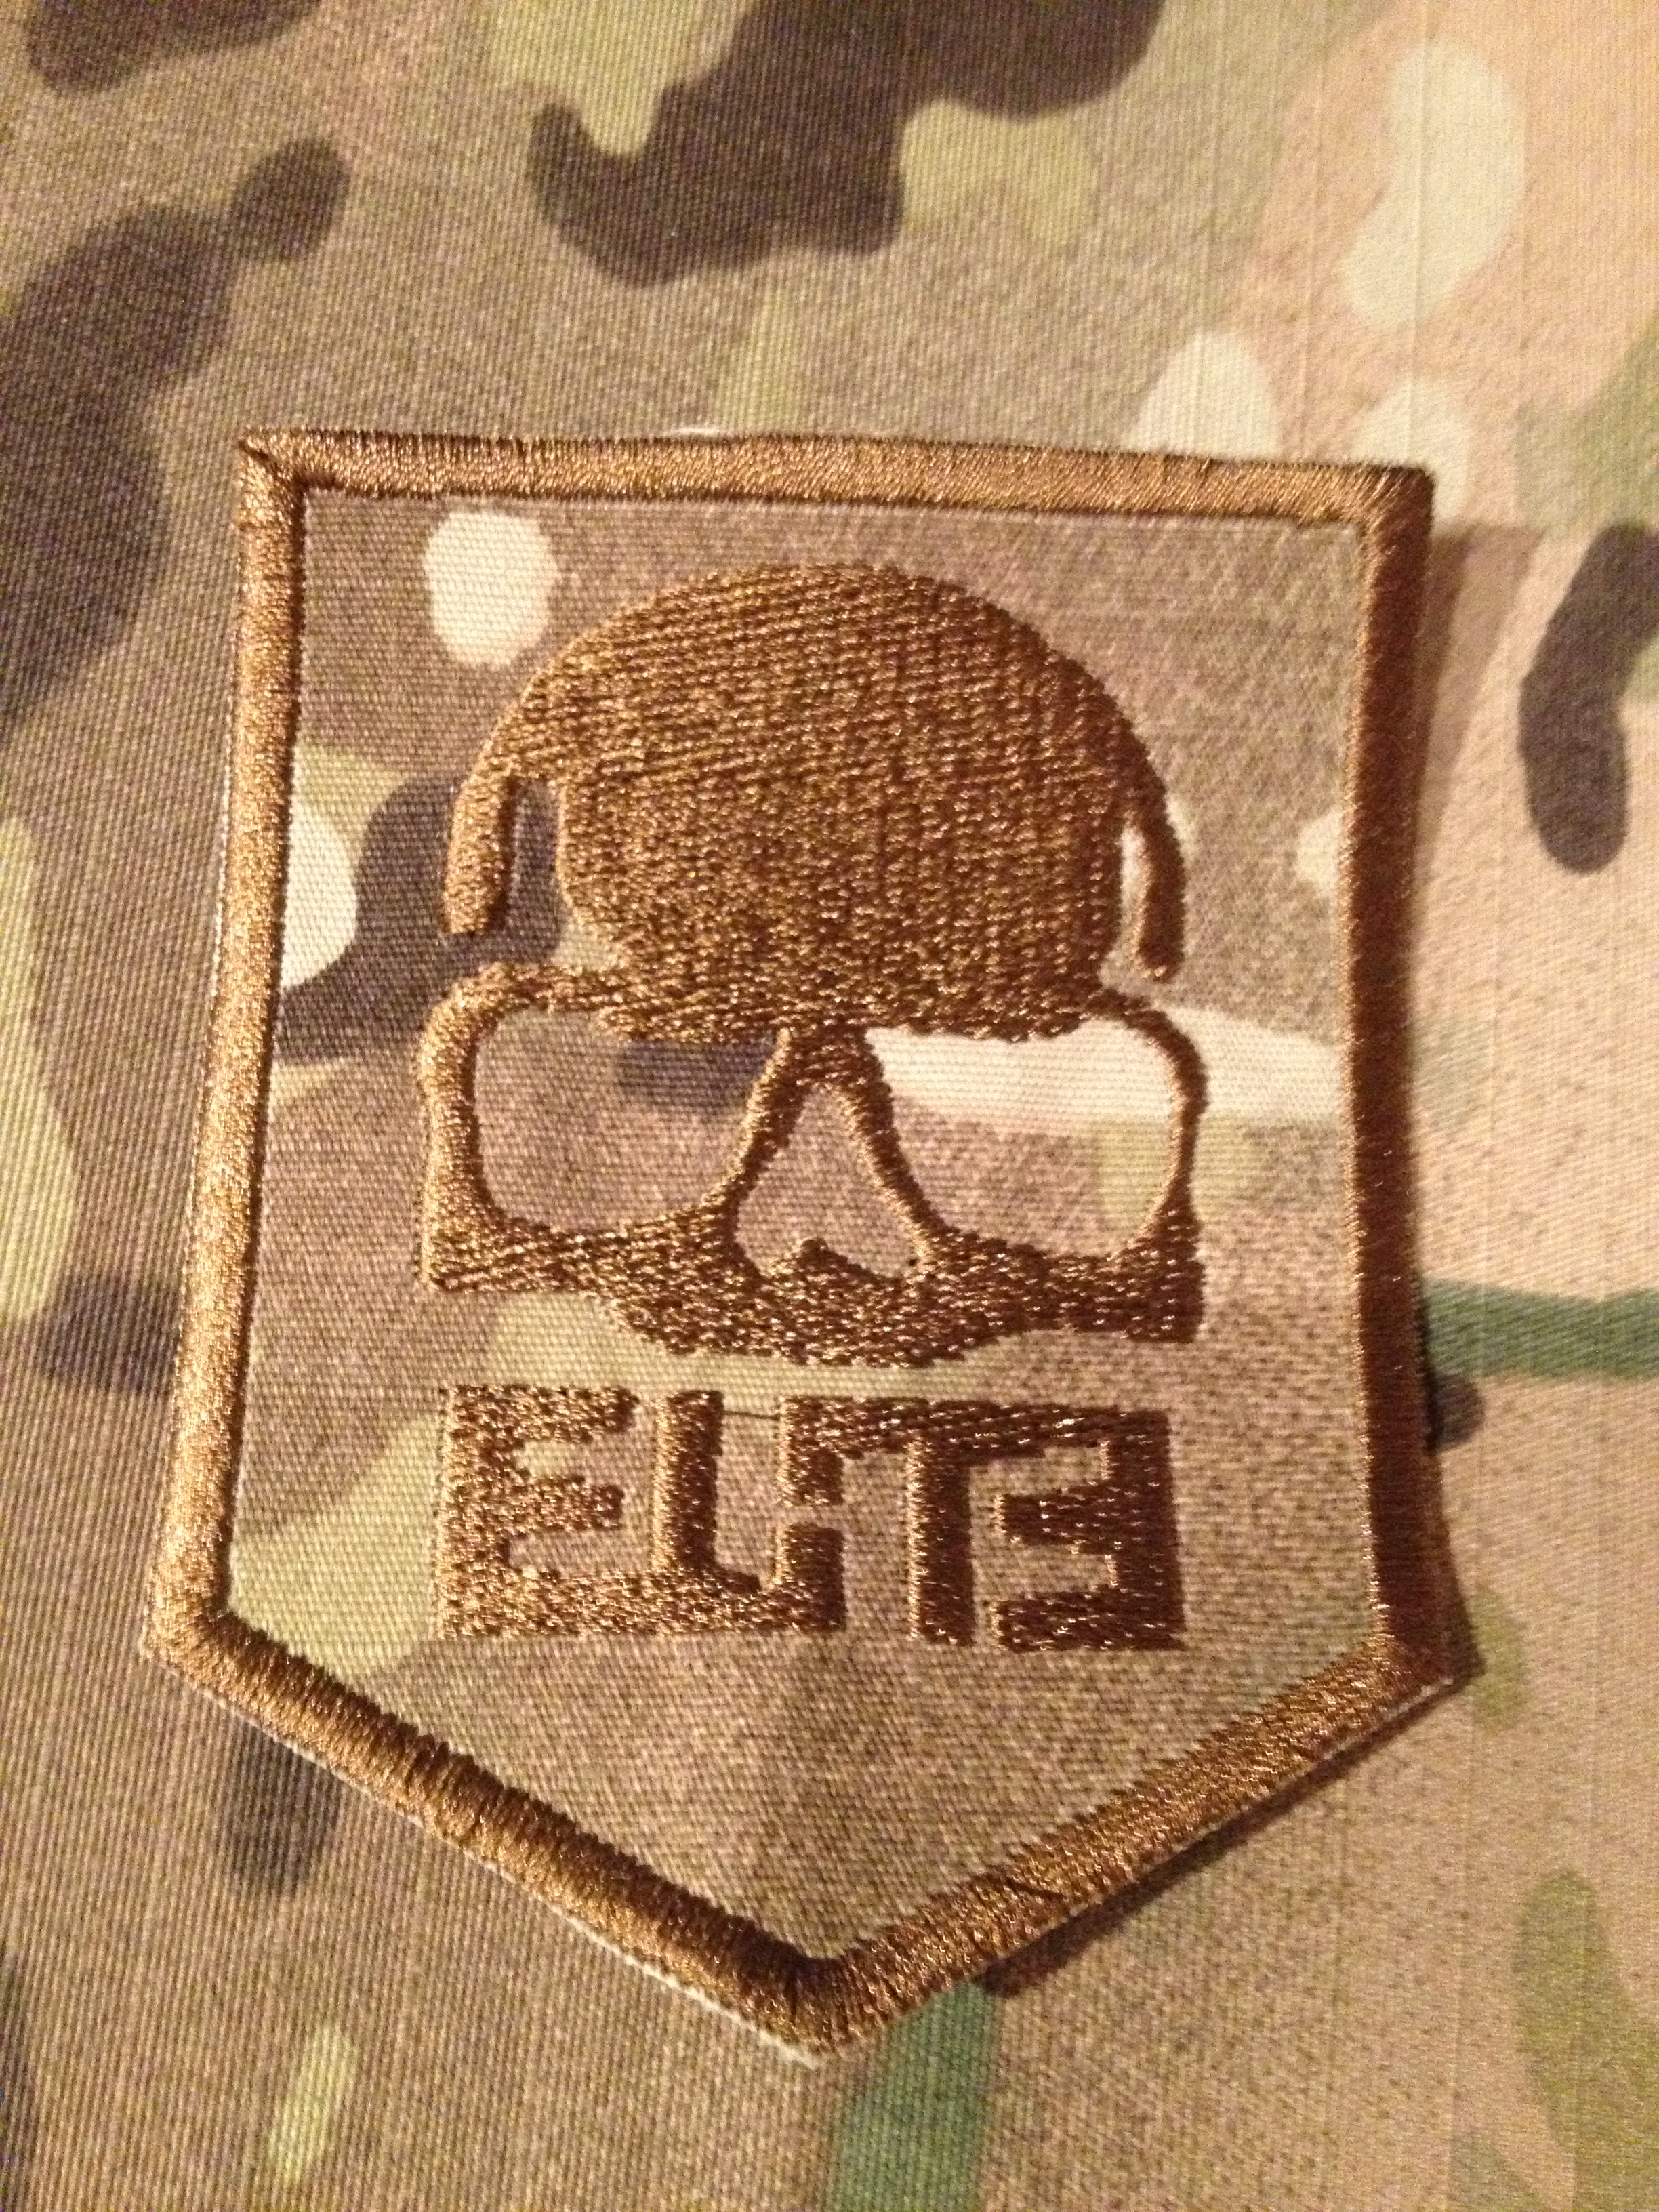 tactical gear and patches 2